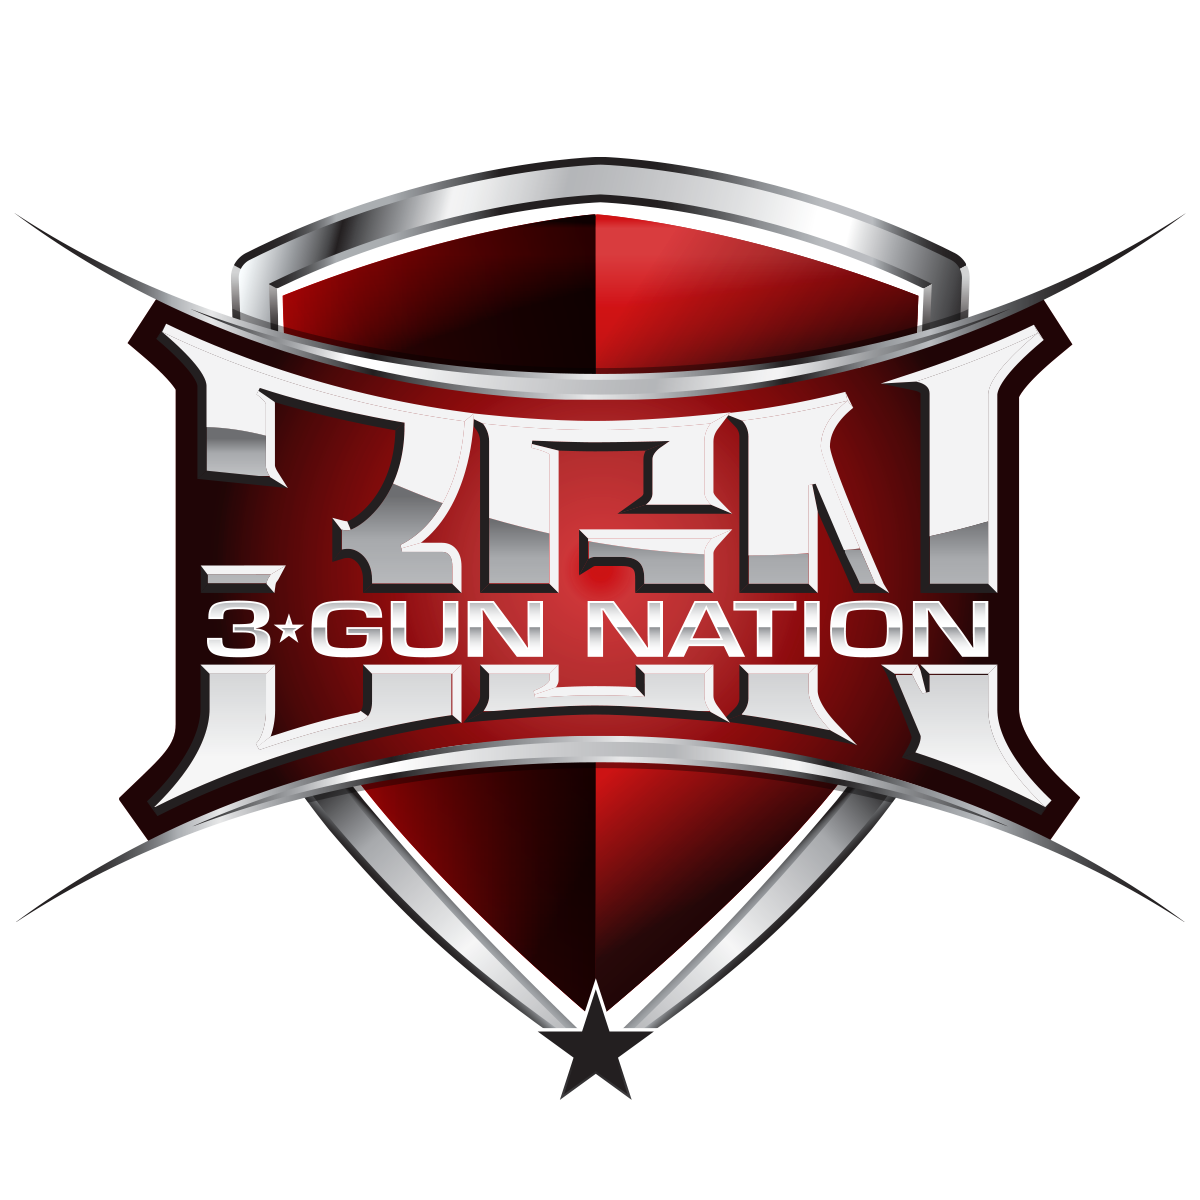 3 GUN NATION